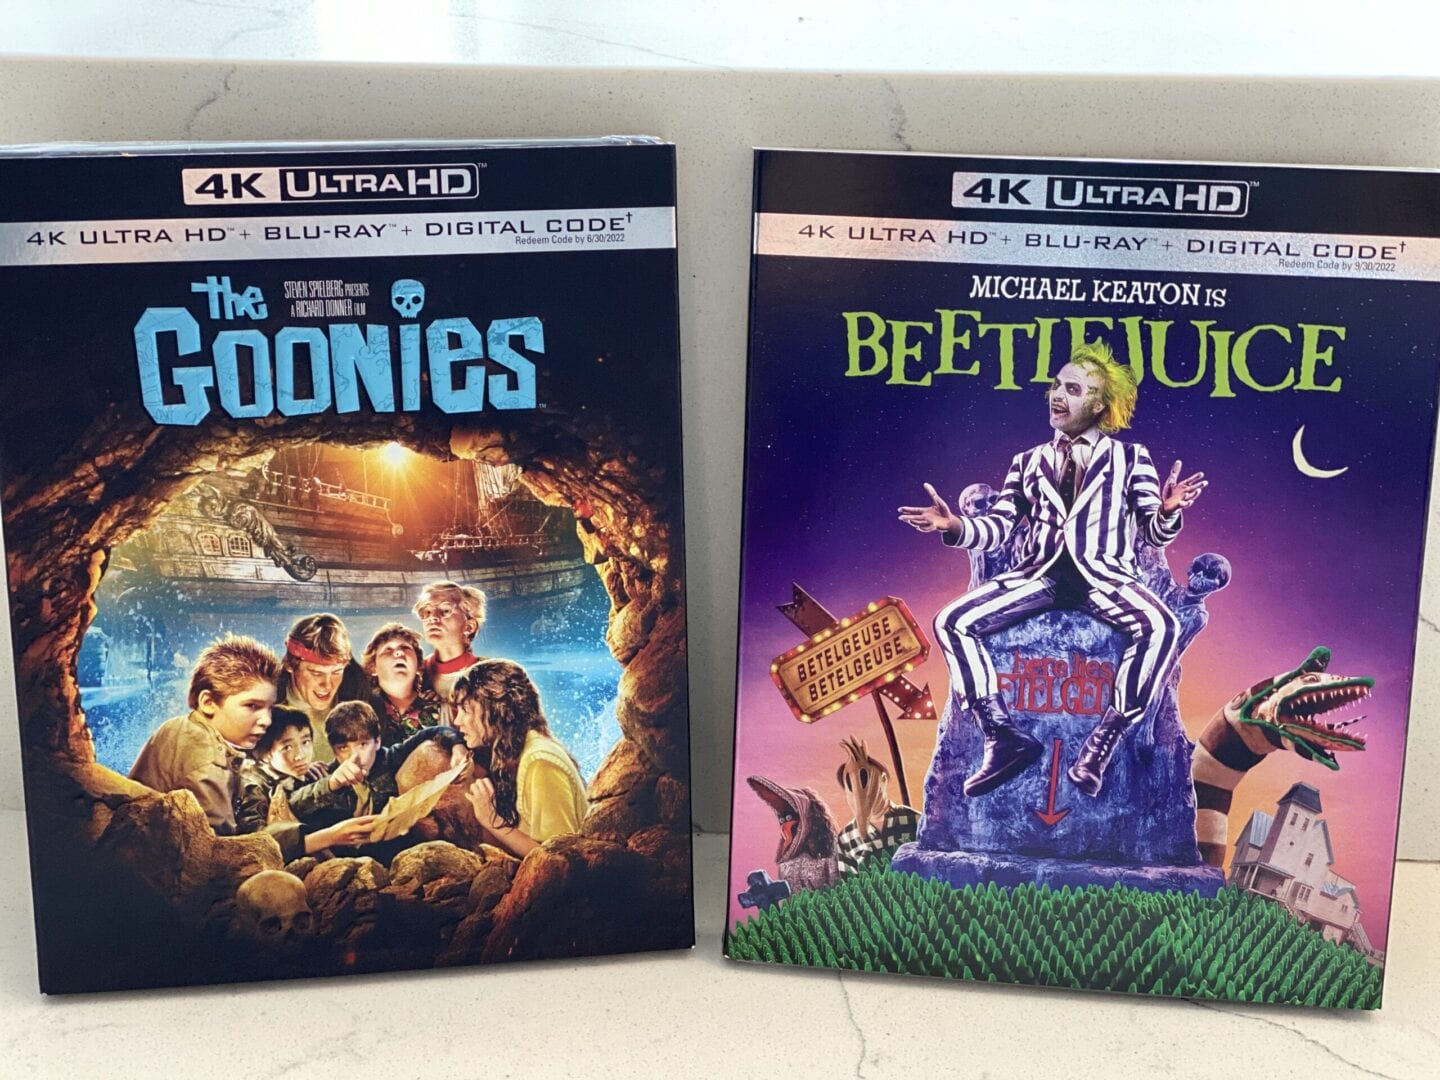 the goonies, Beetlejuice, 4K Ultra HD Blu Ray